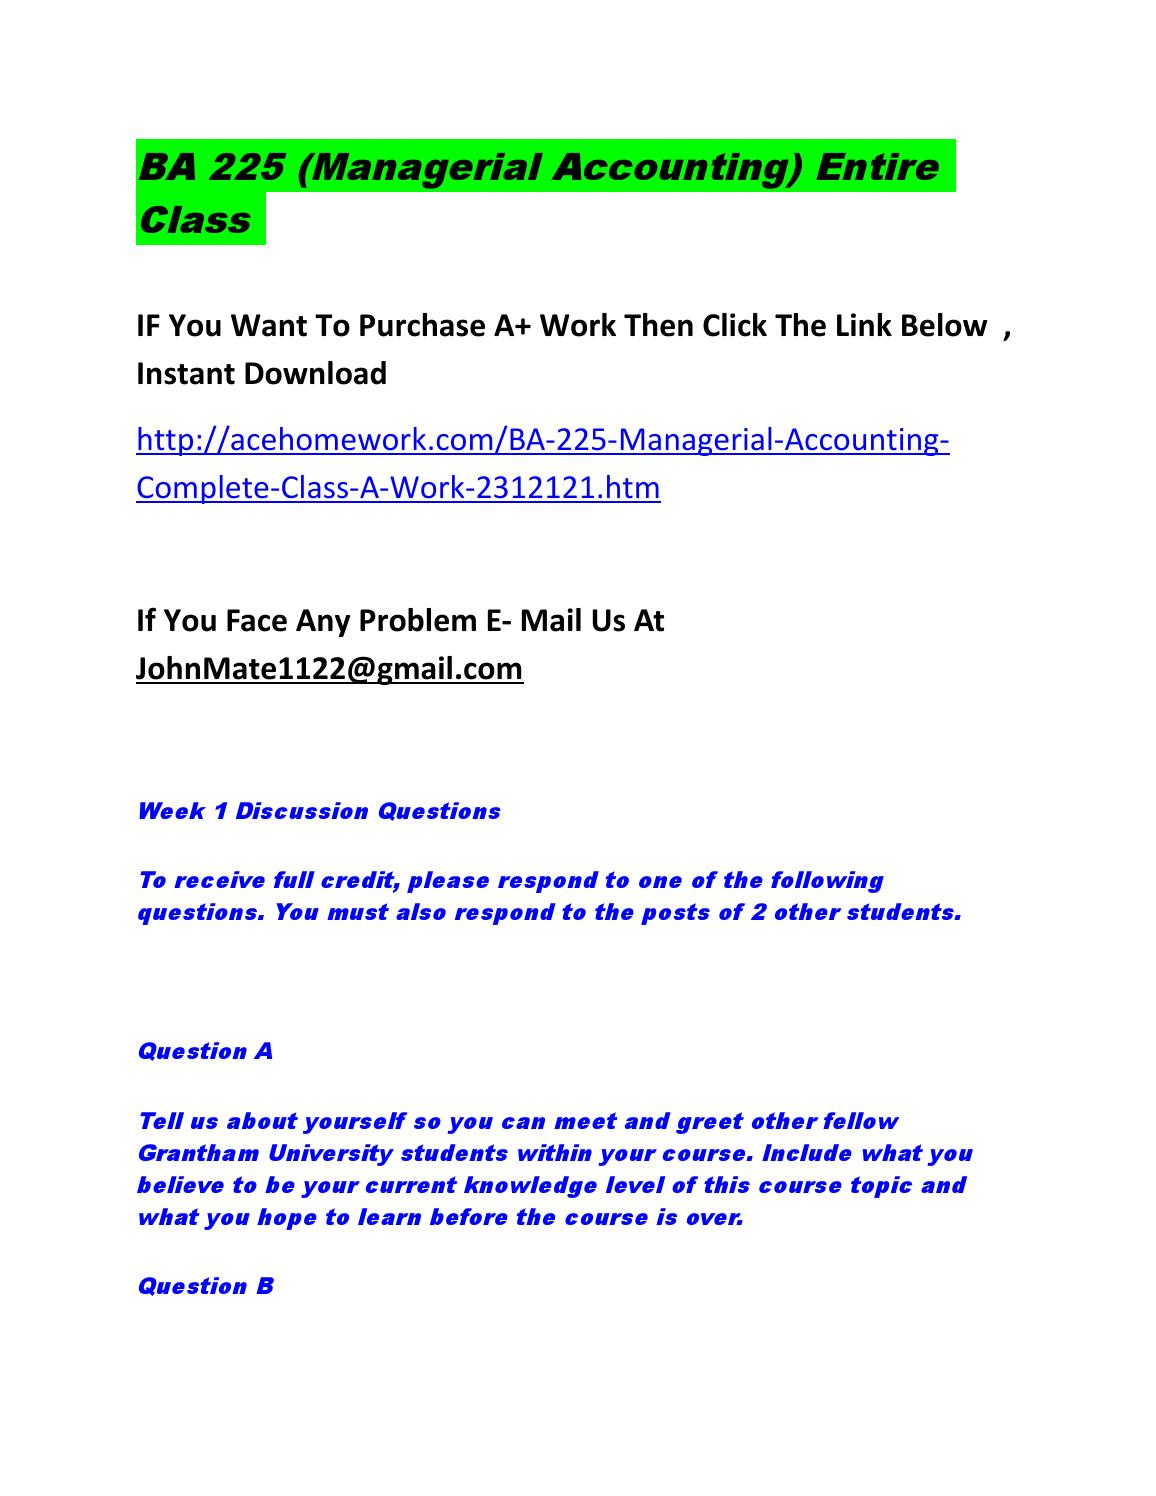 ba 225 managerial accounting If you face any problem then e mail us at johnmate1122@gmailcom ba 225 (managerial accounting) complete class week 1 discussion questions to receive full credit, please respond to one of the following questions.